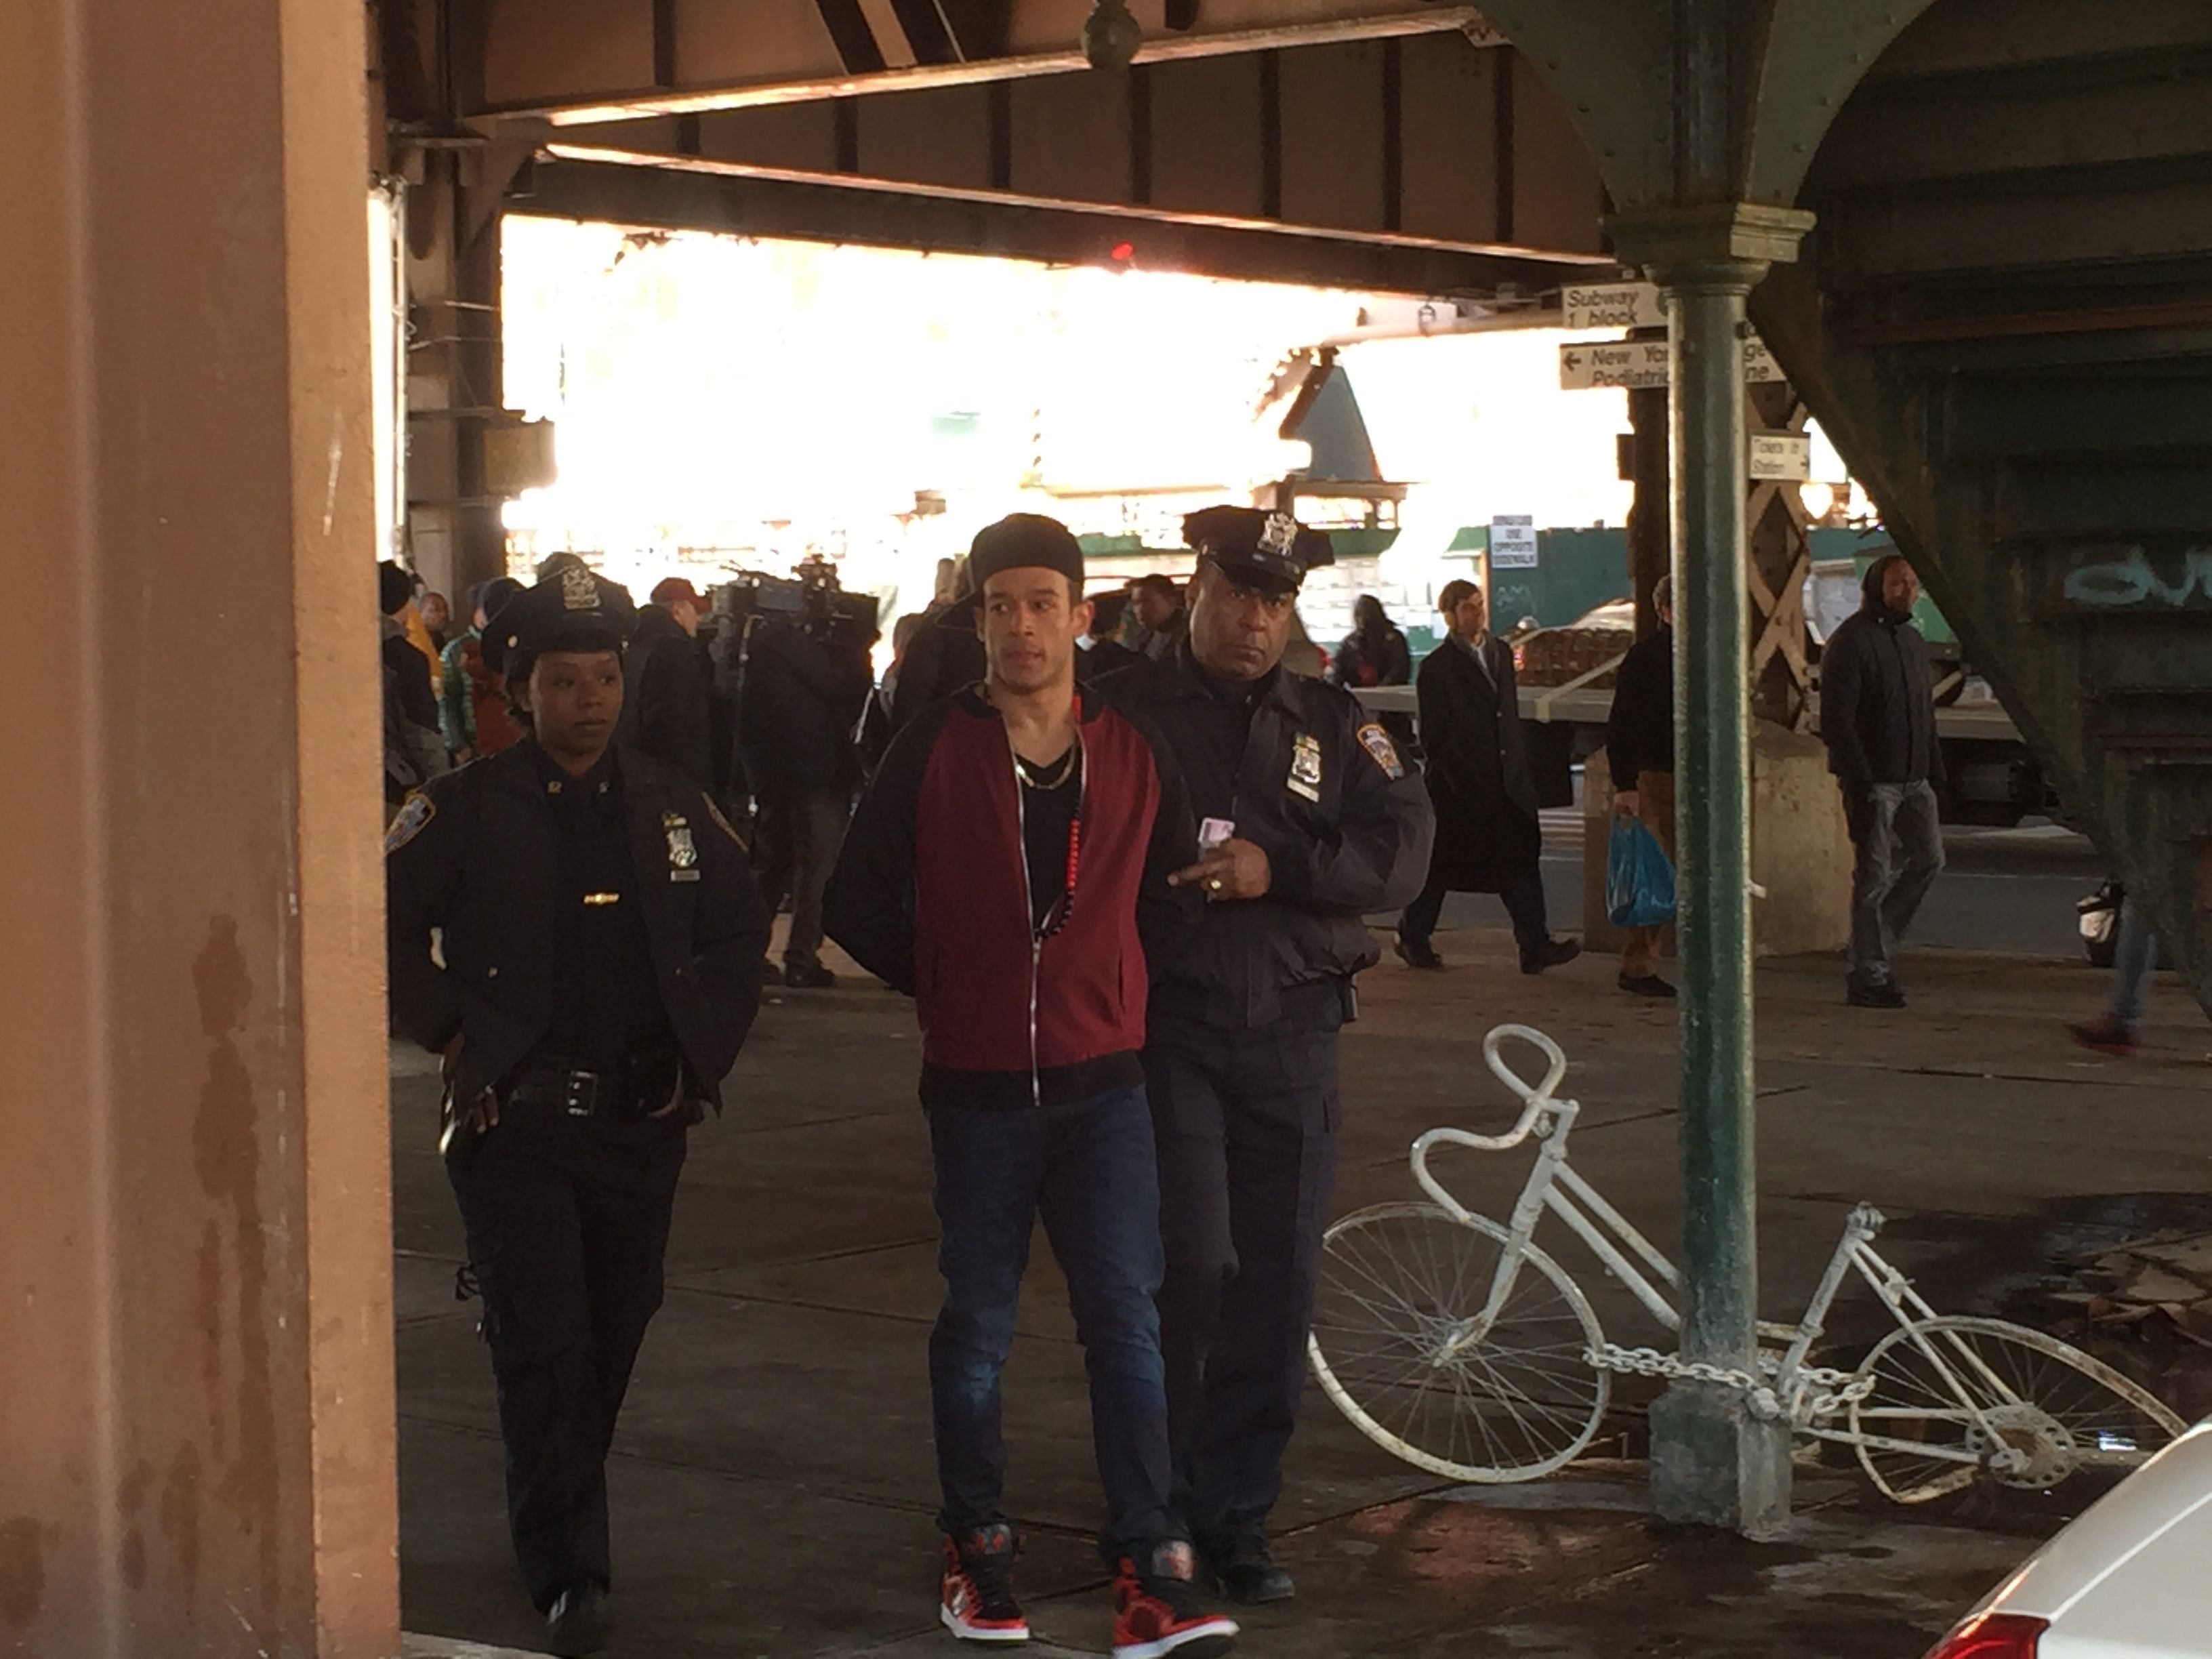 On set of Blue Bloods.